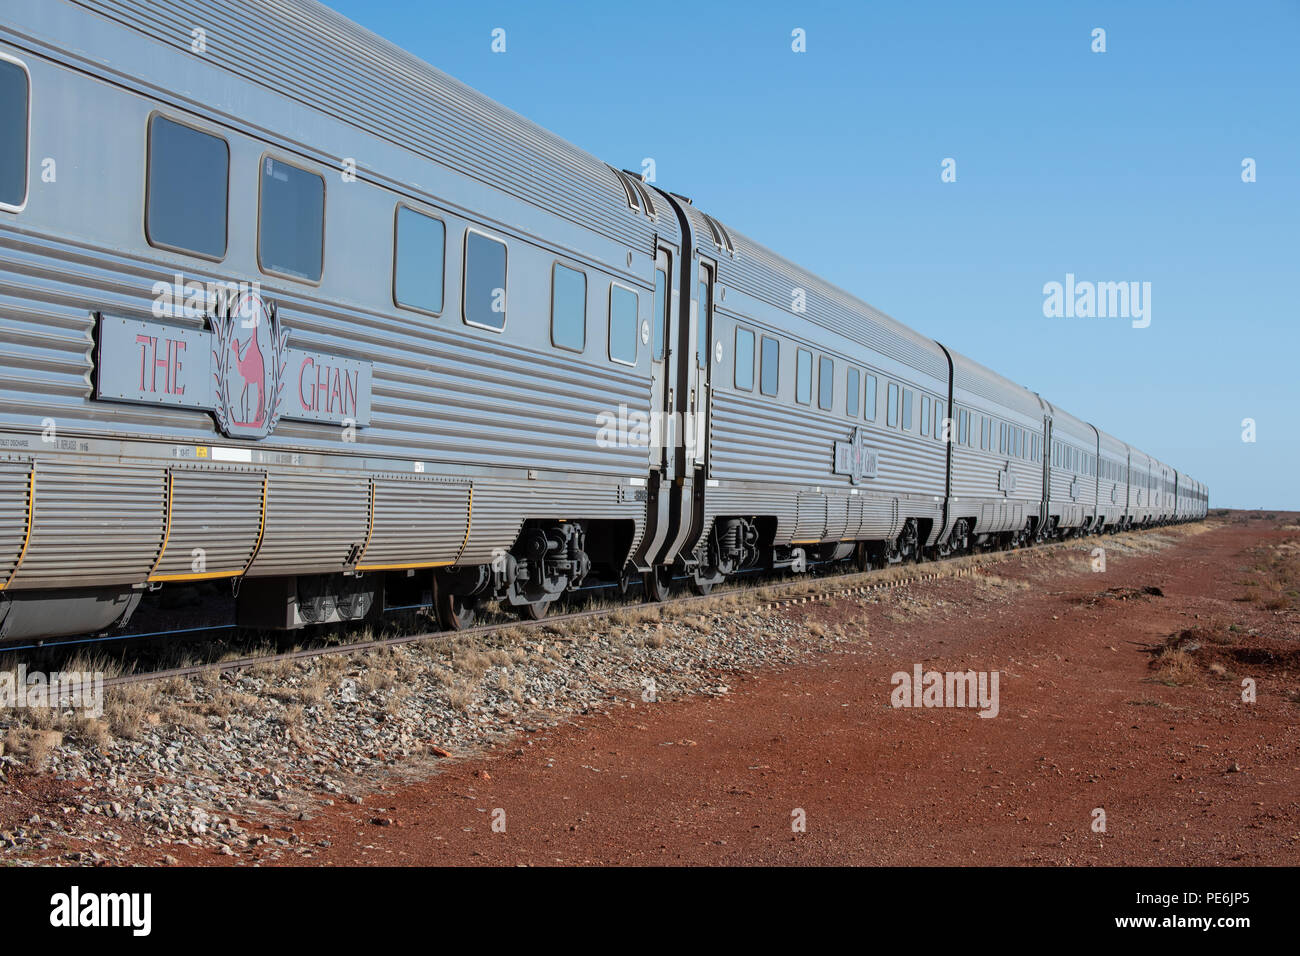 Australia, South Australia, Manguri train stop. The Ghan sightseeing train stopped in Manguri to visit Coober Pedy. Editorial use only. - Stock Image